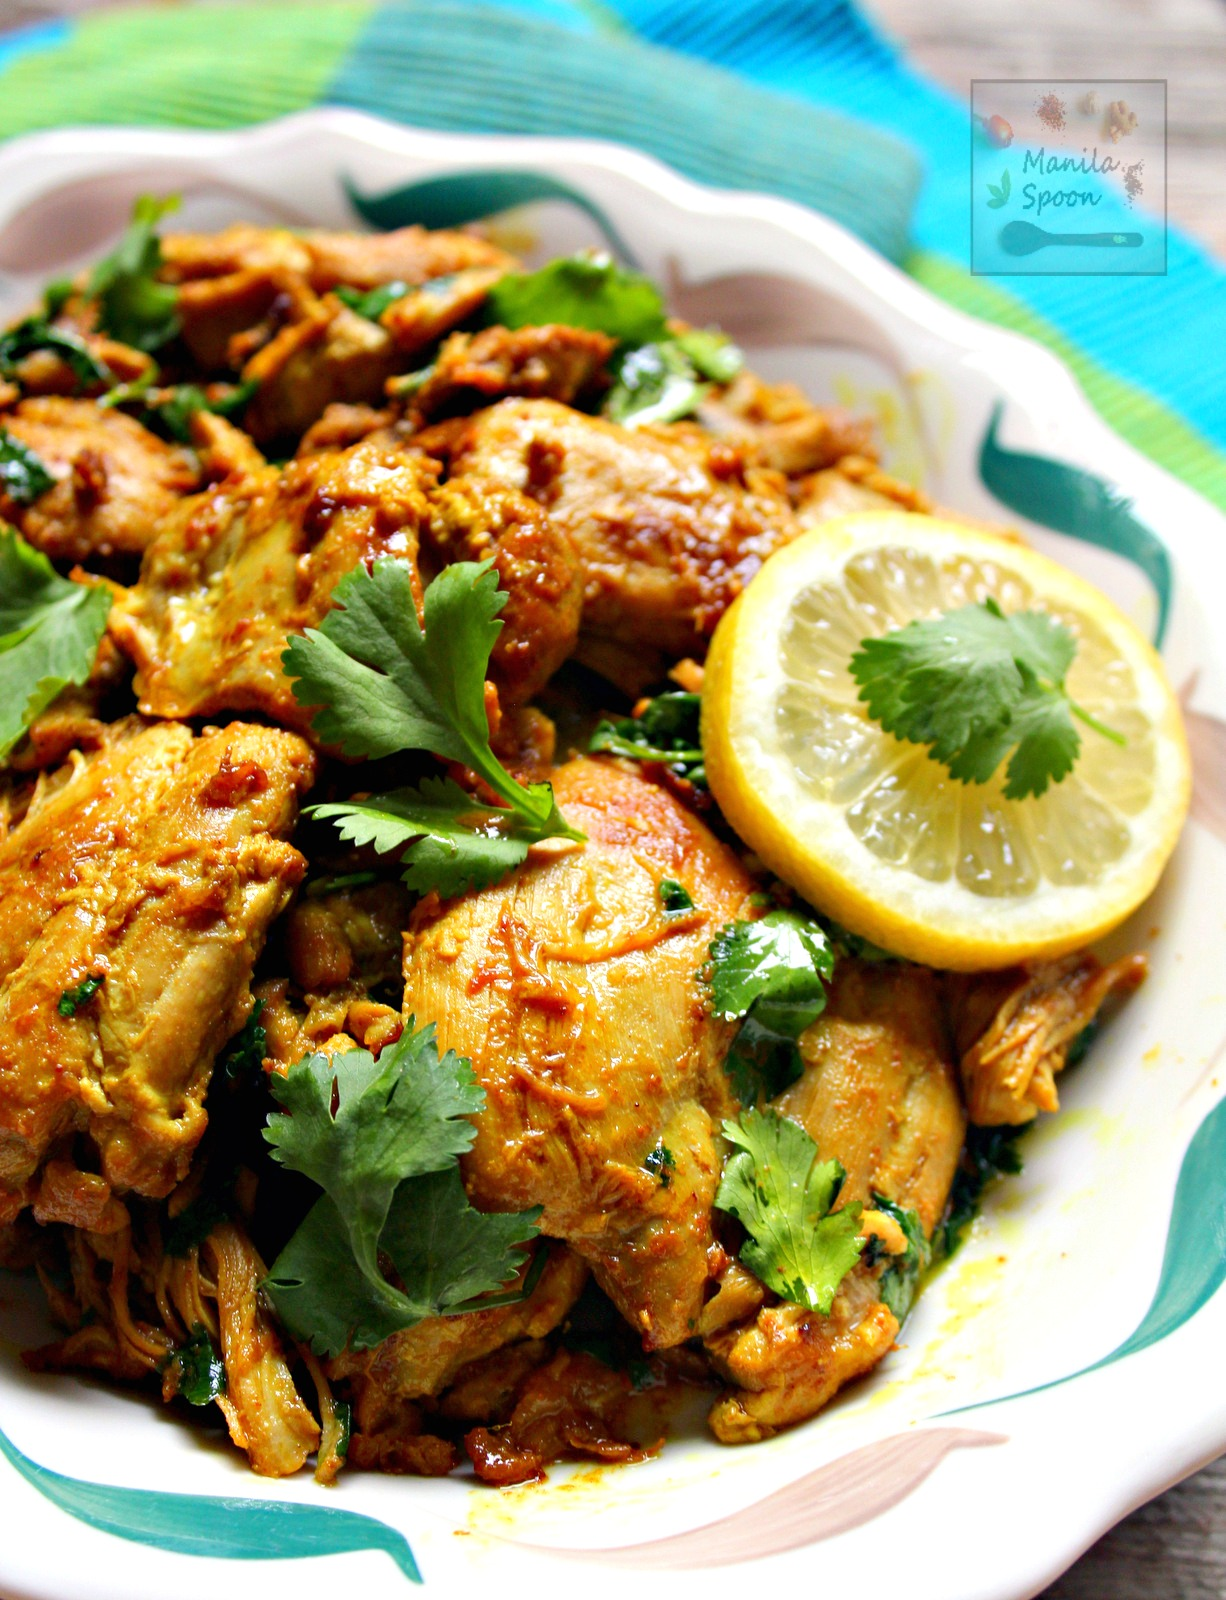 Lemon Cilantro (or Coriander) Chicken